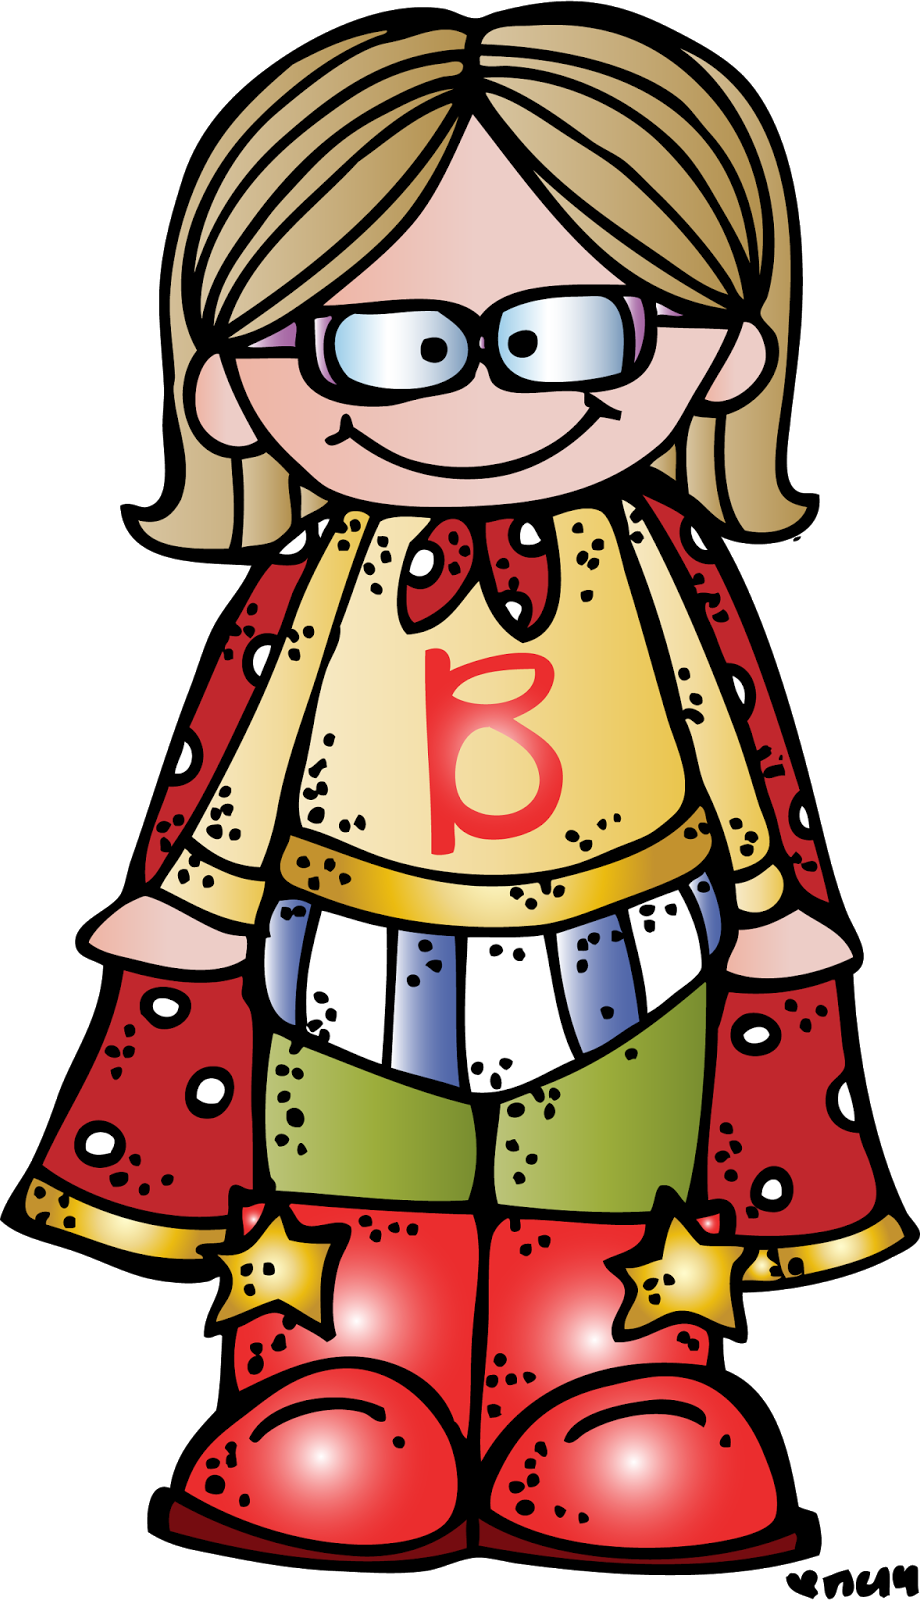 clipart black and white Grandparent clipart picnic. Melonheadz meet baylee friday